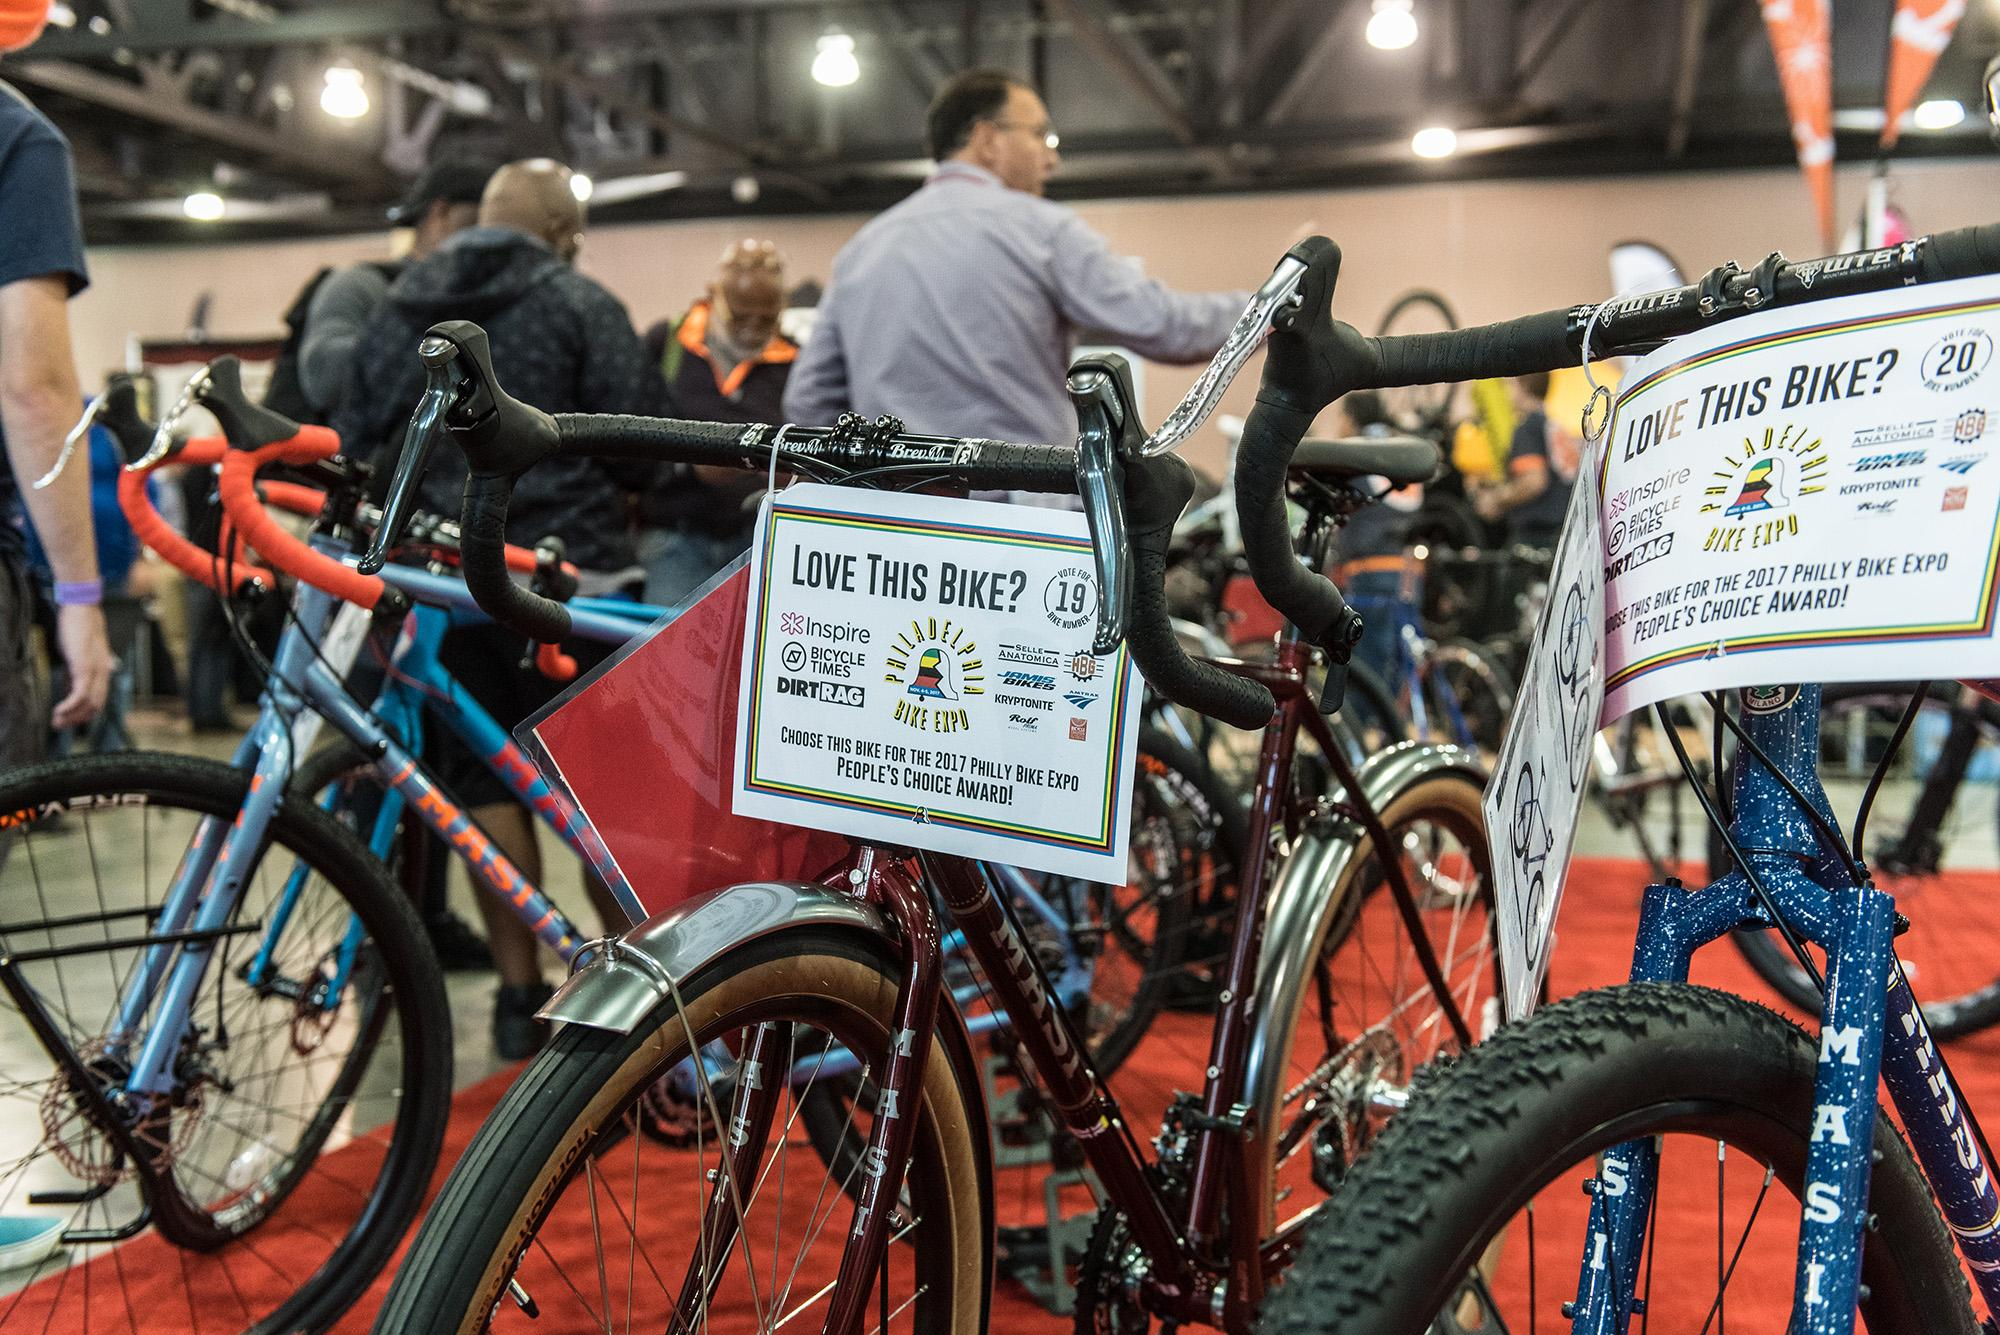 2017 Philly Bike Expo: Walk the Floor and Meet the Builders